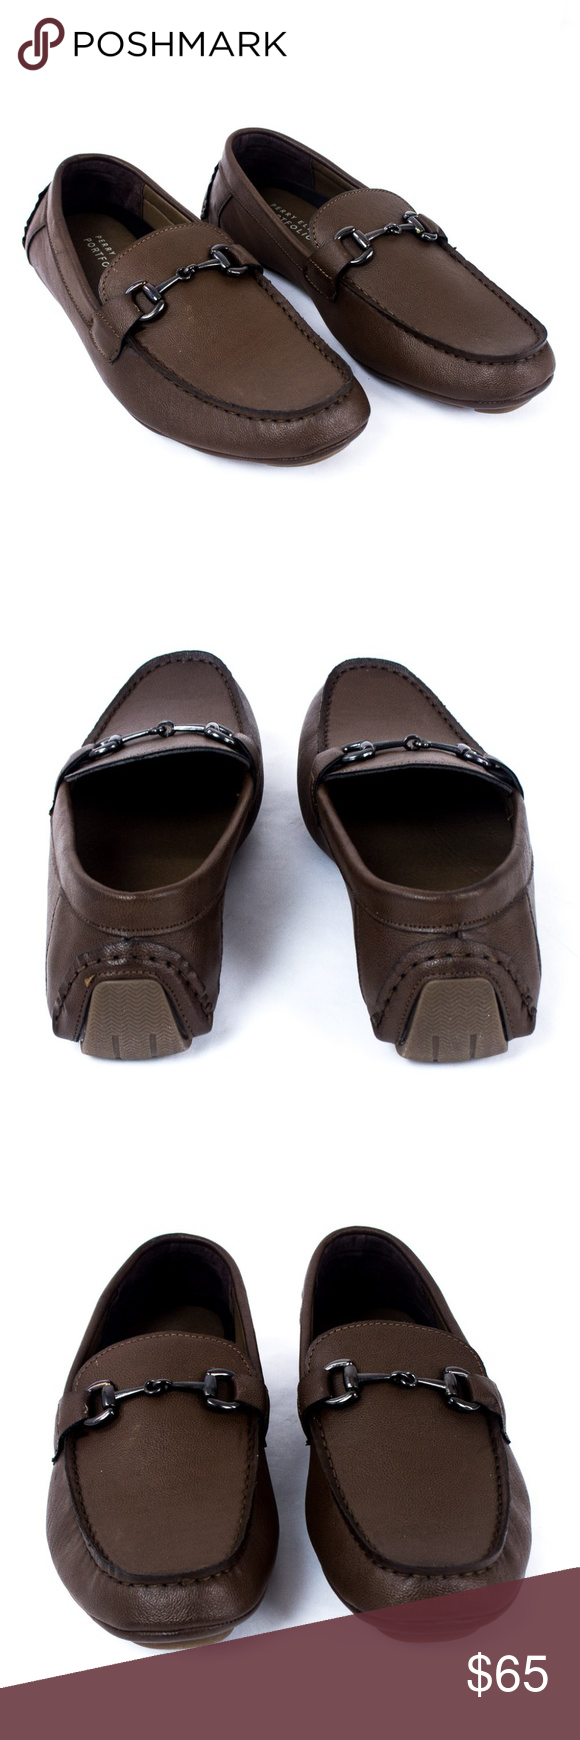 e194988ec01 Perry Ellis Loafer Shoe Mens Brown 11.5 and 8.5 Perry Ellis Nick Loafer Shoe  Mens Chocolate Brown Sz 11.5 and 8.5 SIZES AVAILABLE 11.5 and 8.5 MENS.